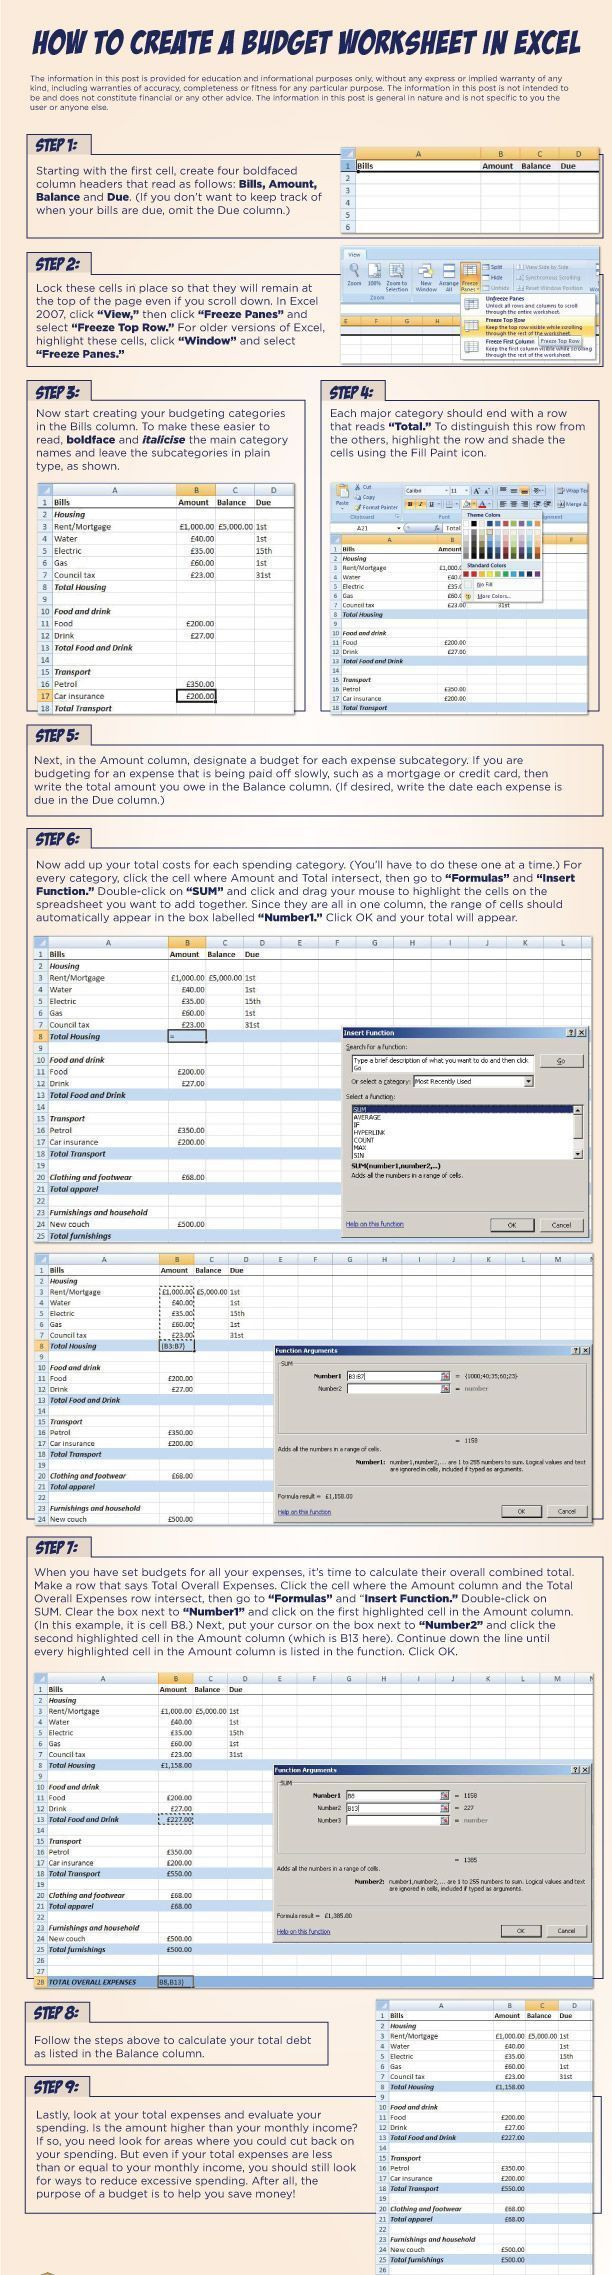 worksheet Free Online Budget Worksheet 17 best ideas about budgeting worksheets on pinterest budget learn how to create a worksheet in excel step by step